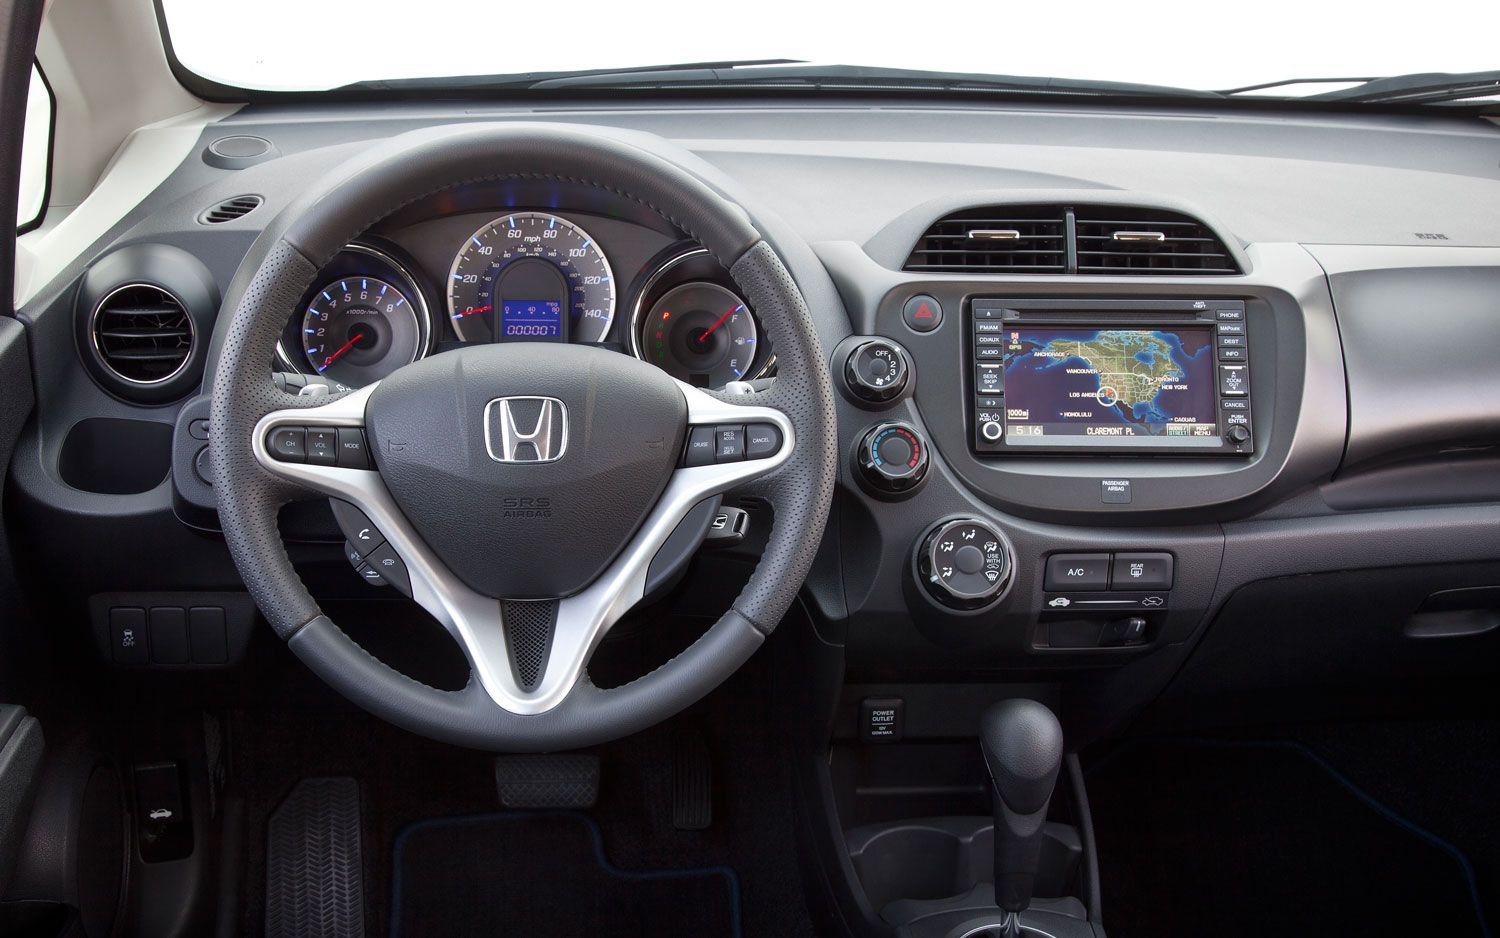 2012 Honda Fit Interior Mods Car Honda Fit Honda Honda Jazz